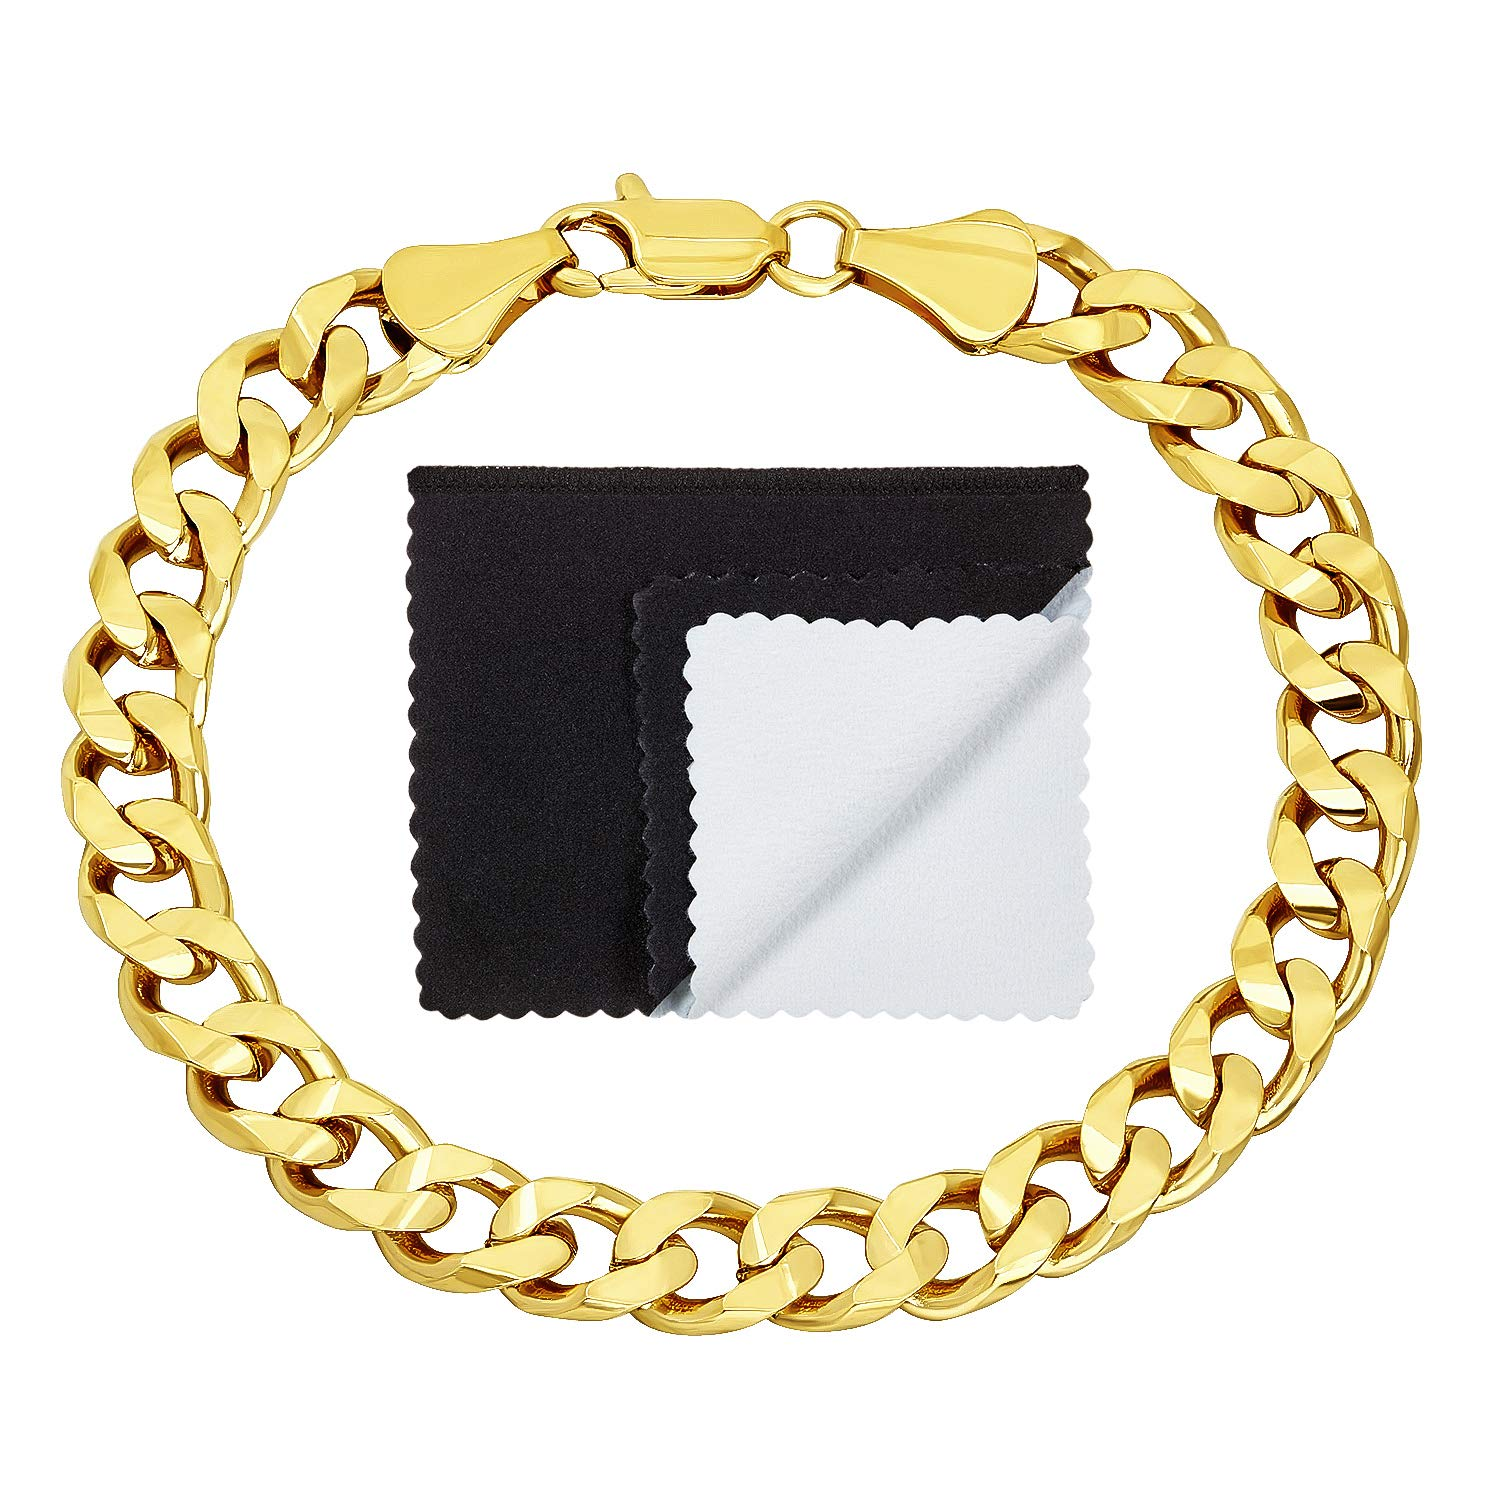 The Bling Factory 14k Yellow Gold Plated 7.5mm Smooth Beveled Cuban Curb Link Chain, 7'' + Microfiber Jewelry Polishing Cloth